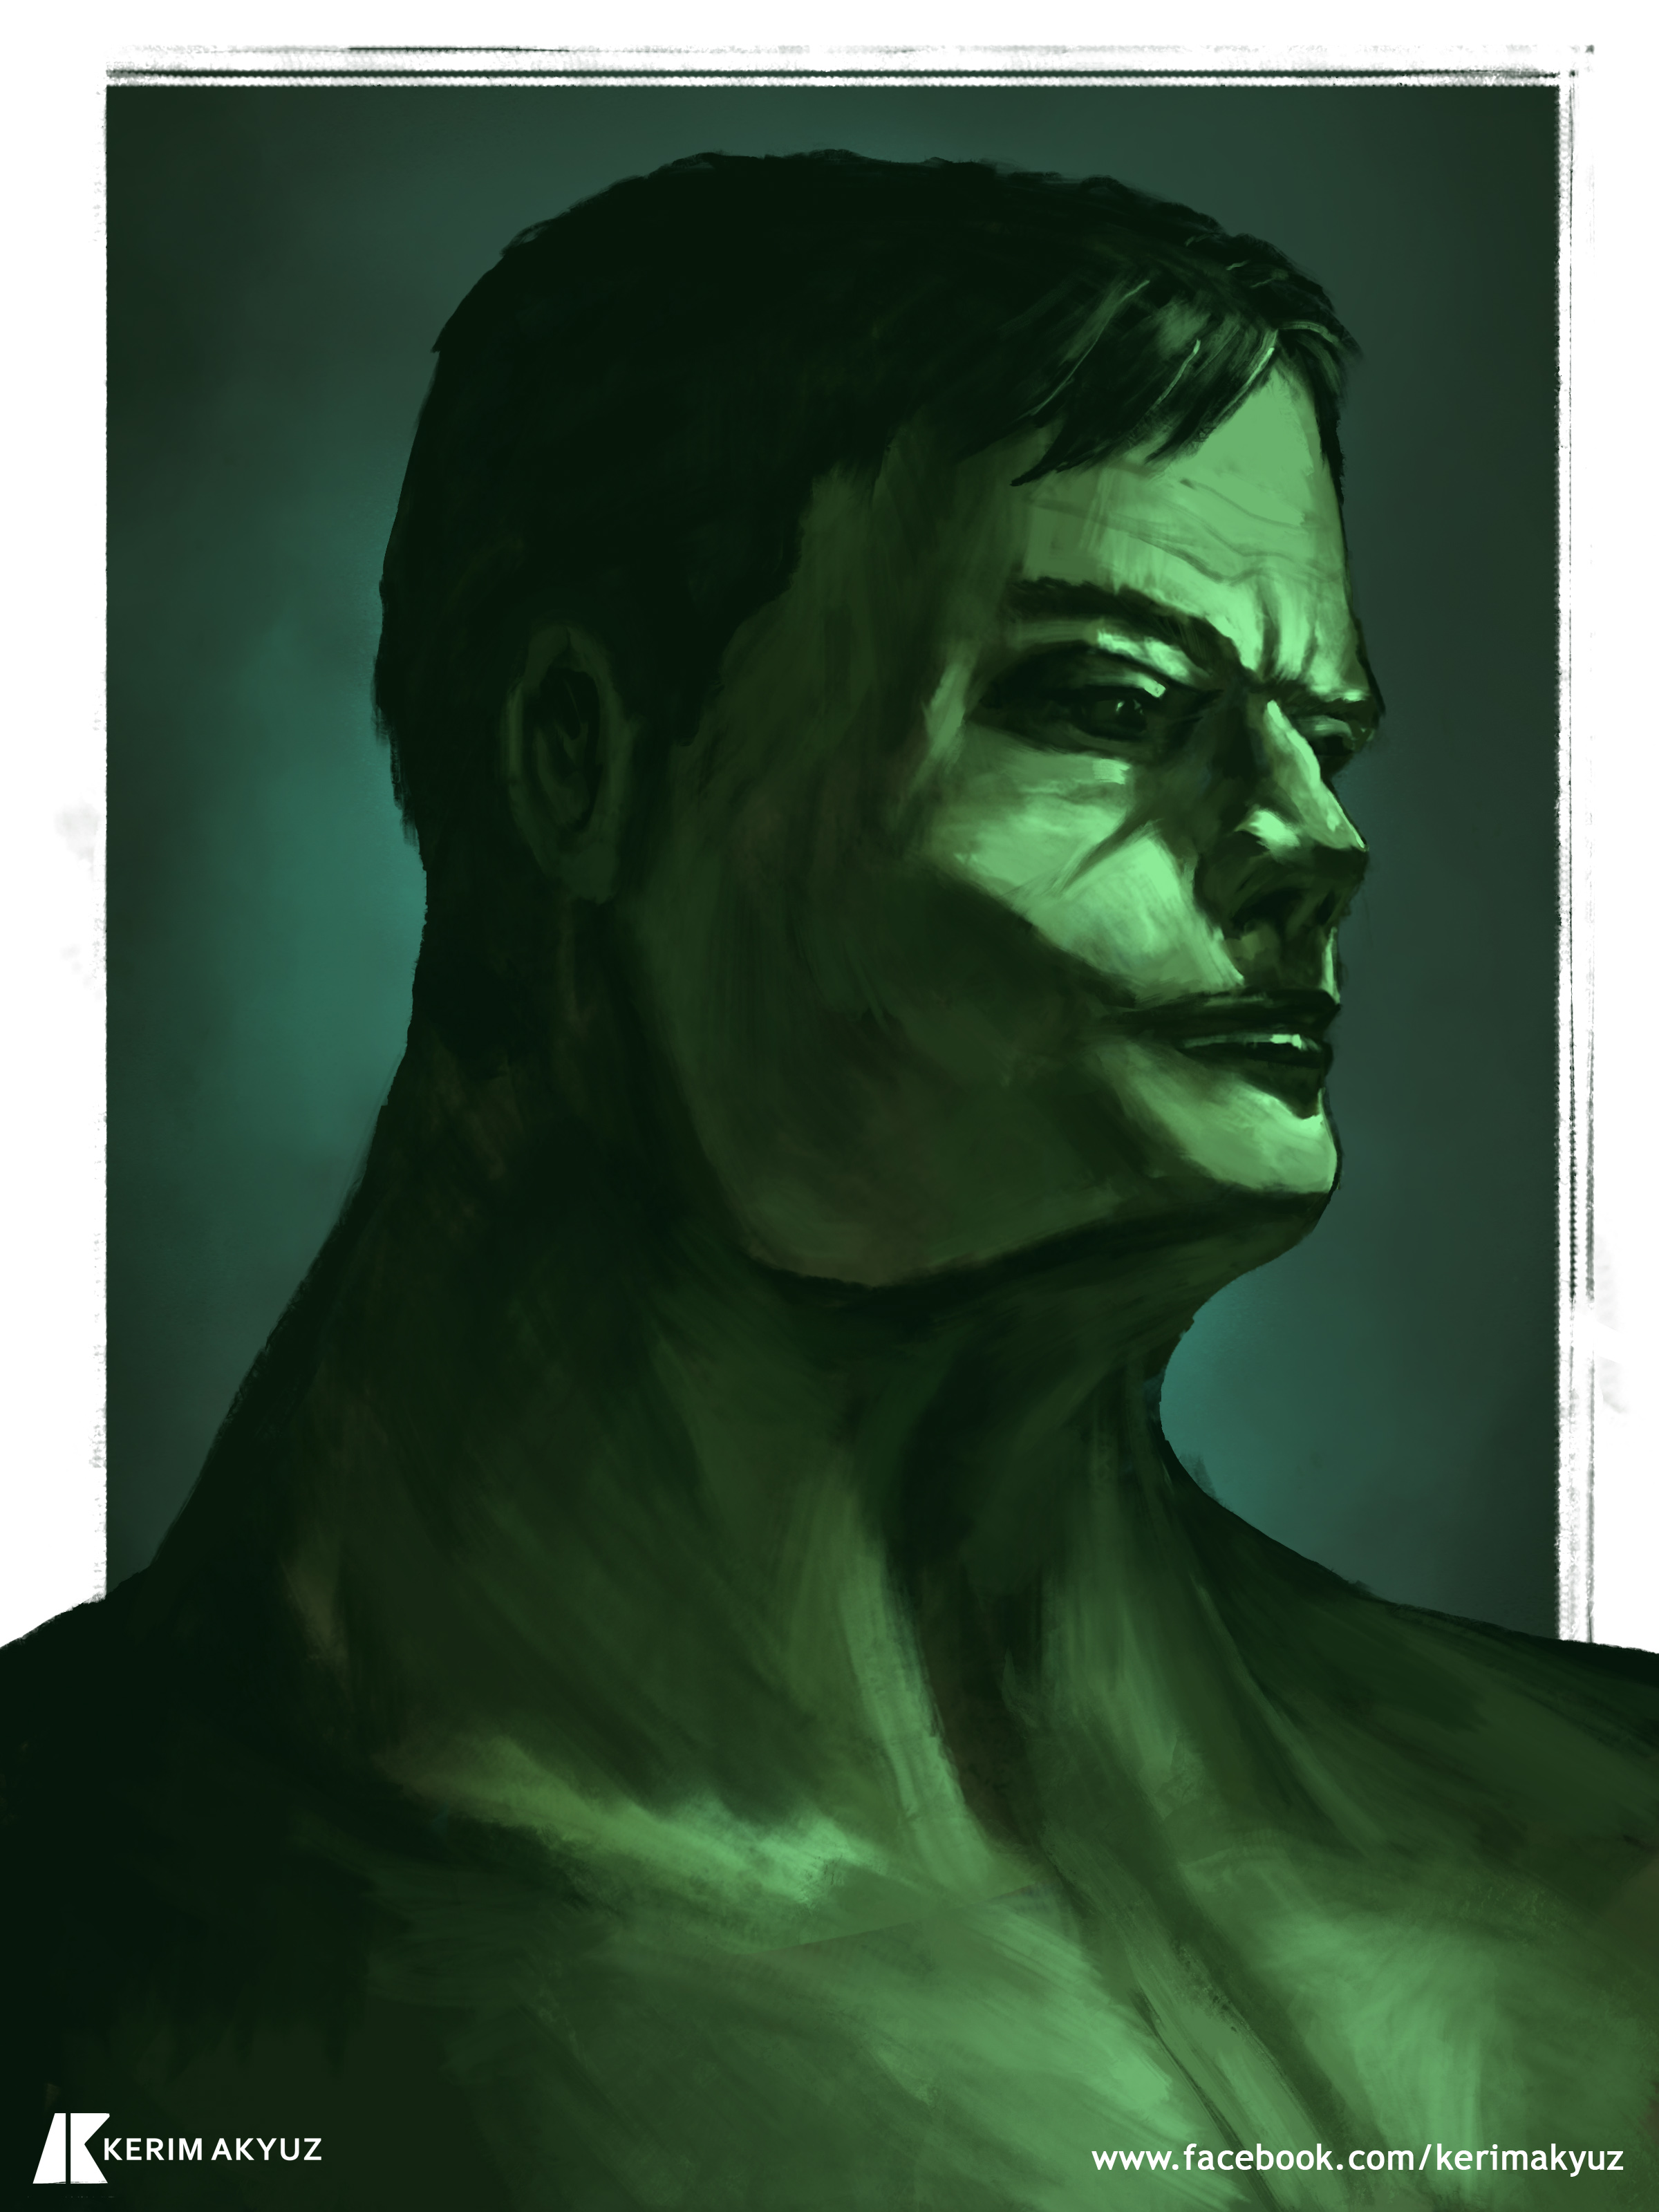 Daily Imagination #355 - The Hulk